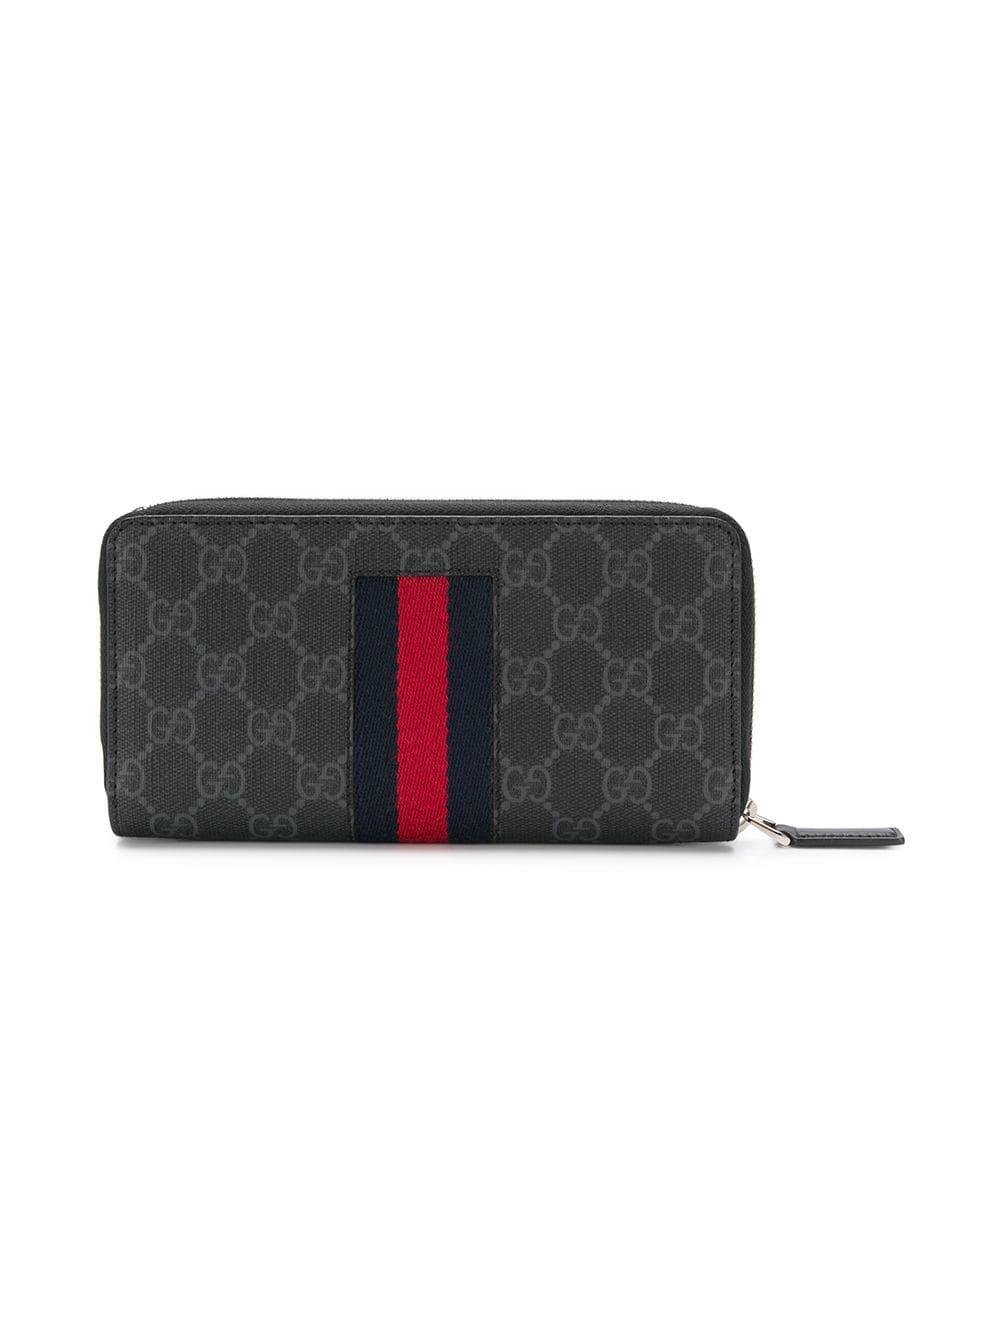 65348b23aa9 Lyst - Gucci GG Supreme Wallet in Black for Men - Save ...